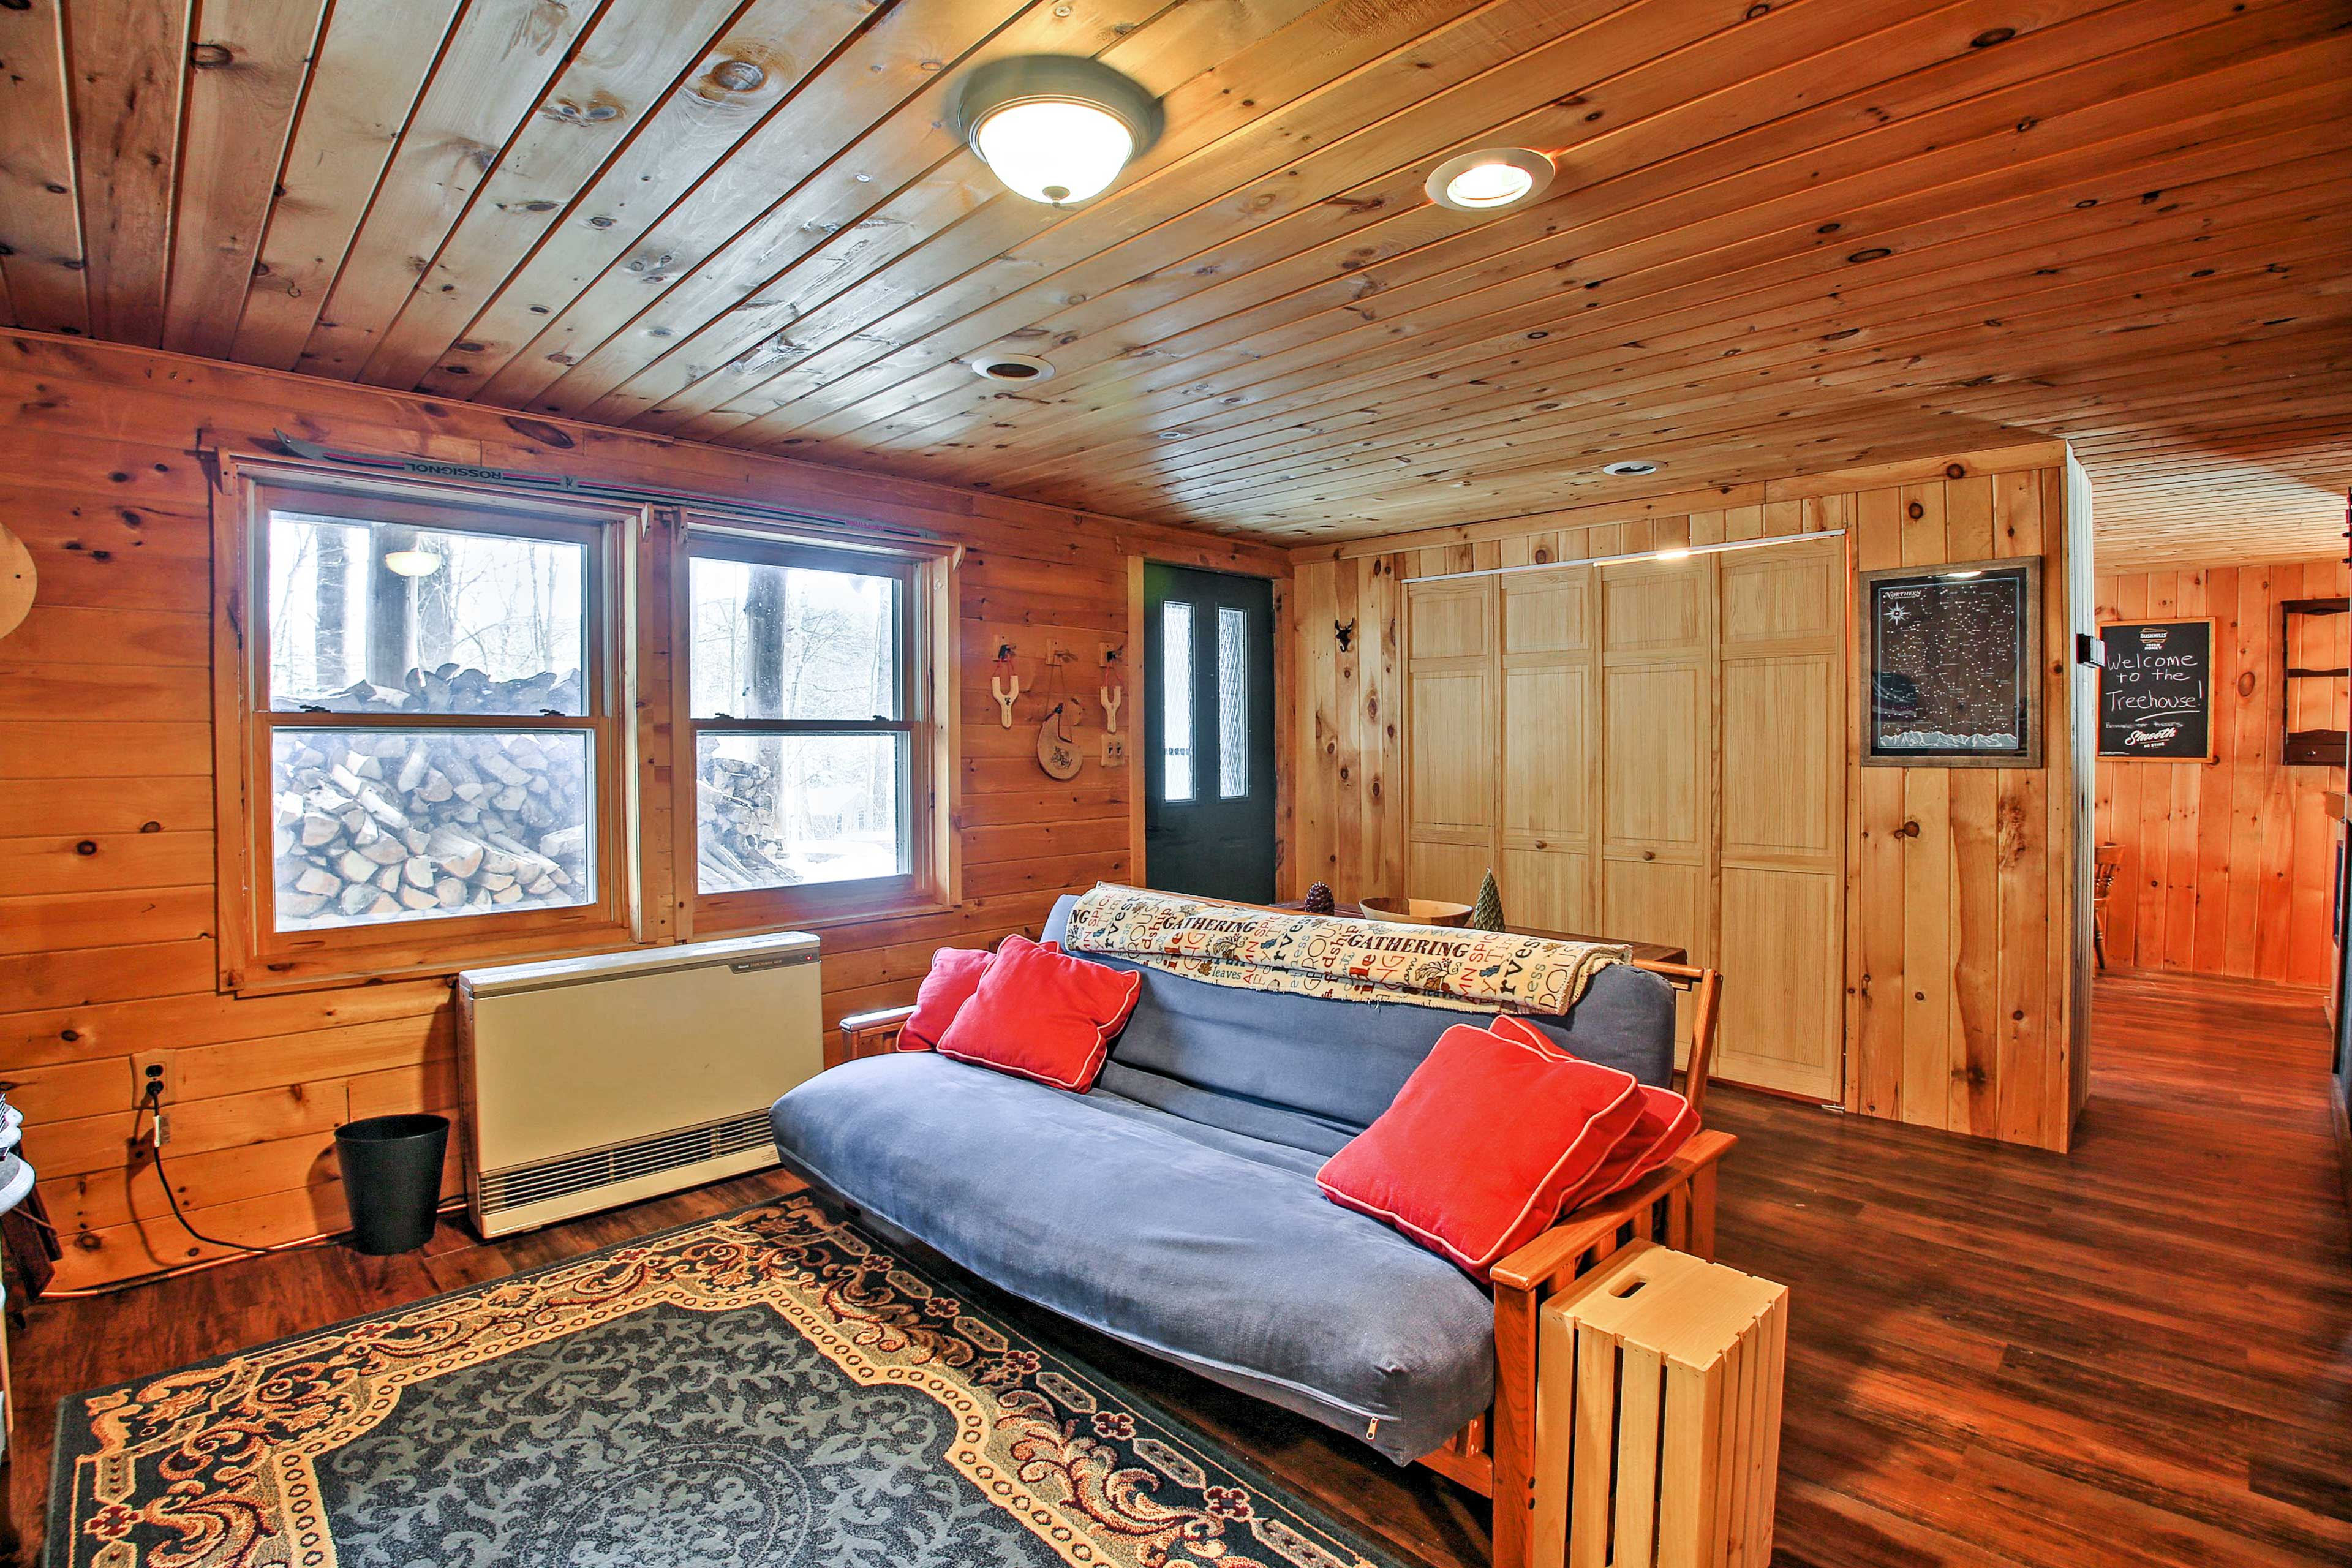 The basement offers a futon for additional sleeping.